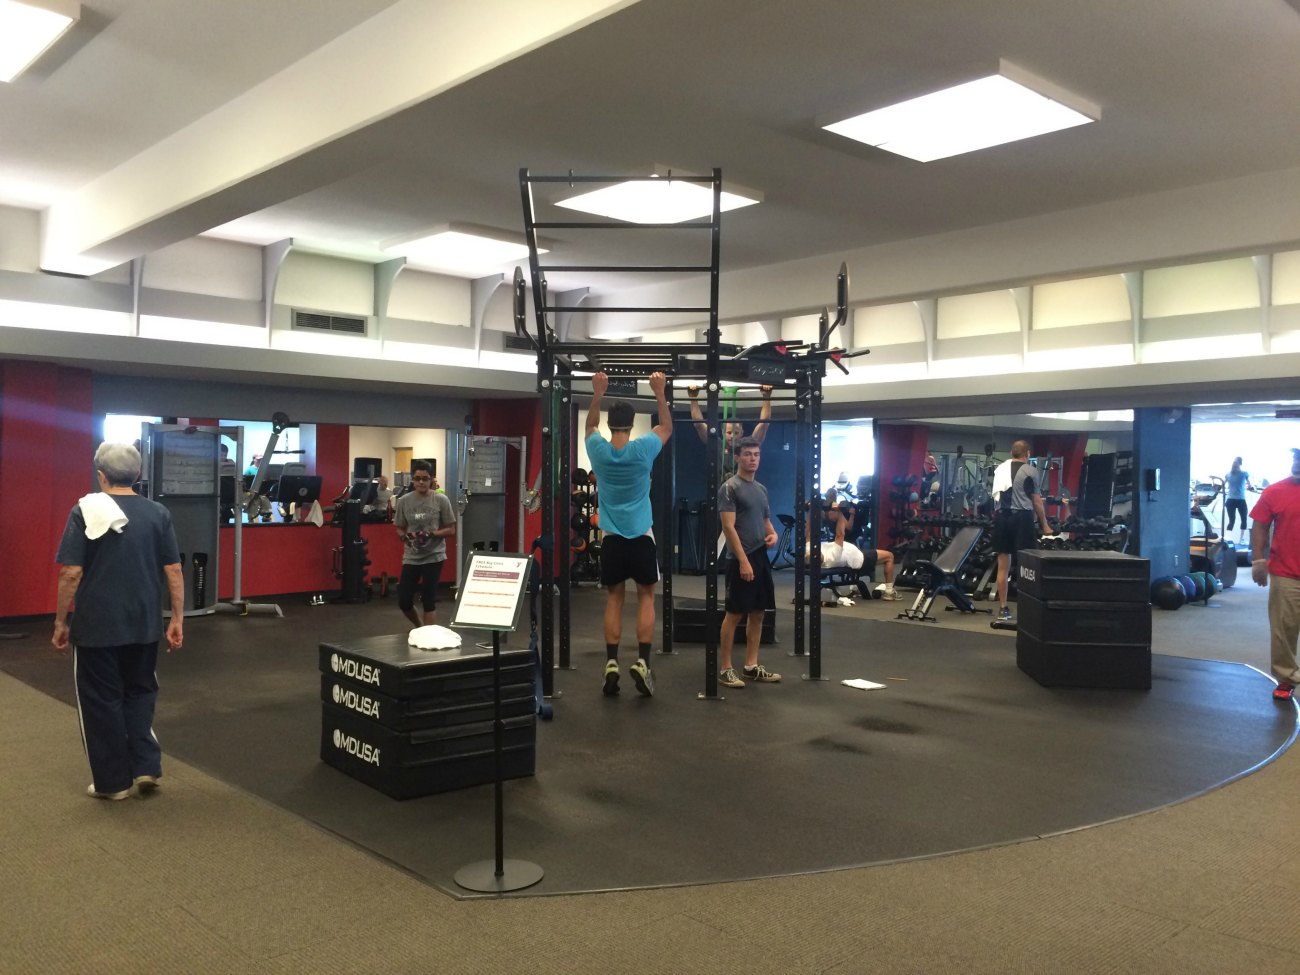 The Dowd YMCA added a new rig to the third floor and more changes are coming